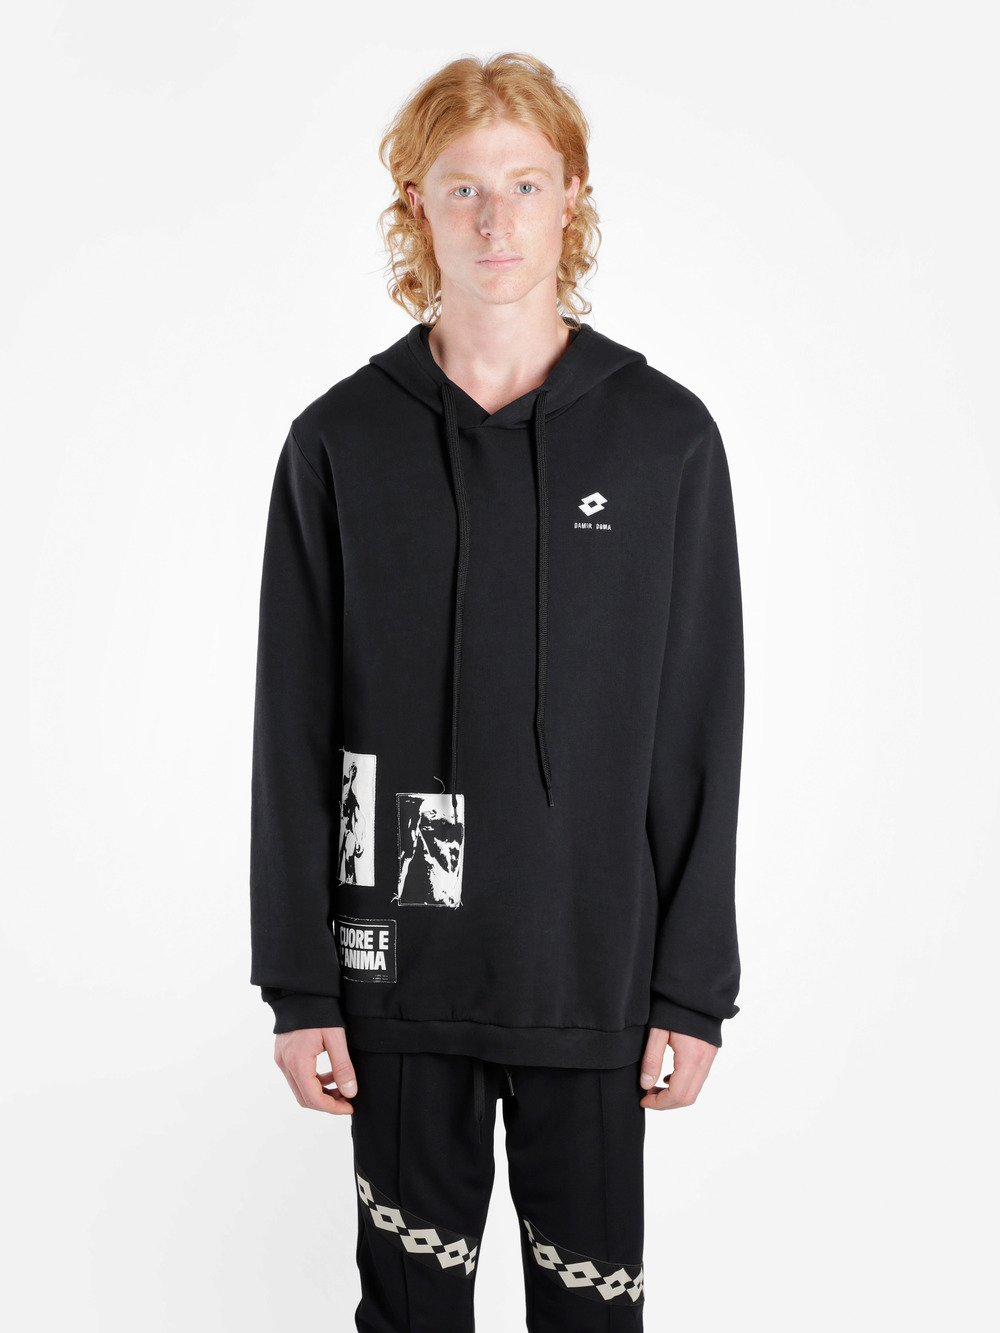 DAMIR DOMA X Lotto Welf Hoodie in Black